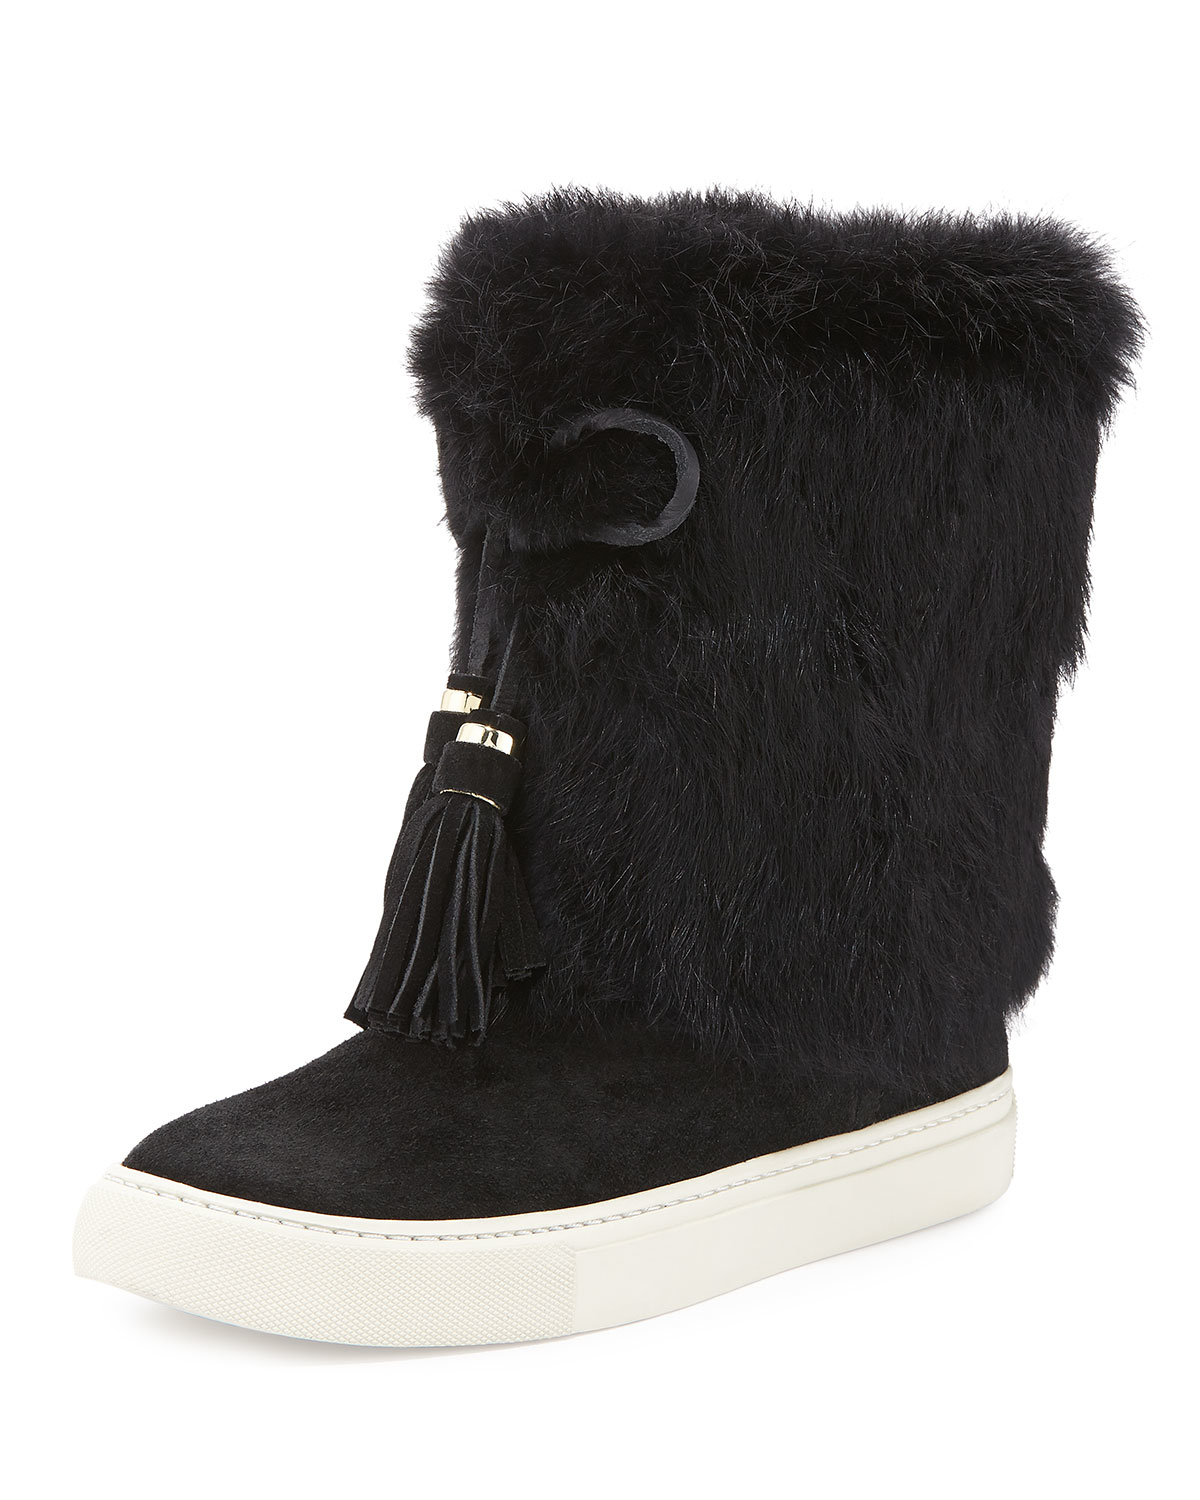 Find wholesale black fur boots online from China black fur boots wholesalers and dropshippers. DHgate helps you get high quality discount black fur boots at bulk prices. bestyload7od.cf provides black fur boots items from China top selected Boots, Shoes & Accessories suppliers at wholesale prices with worldwide delivery.